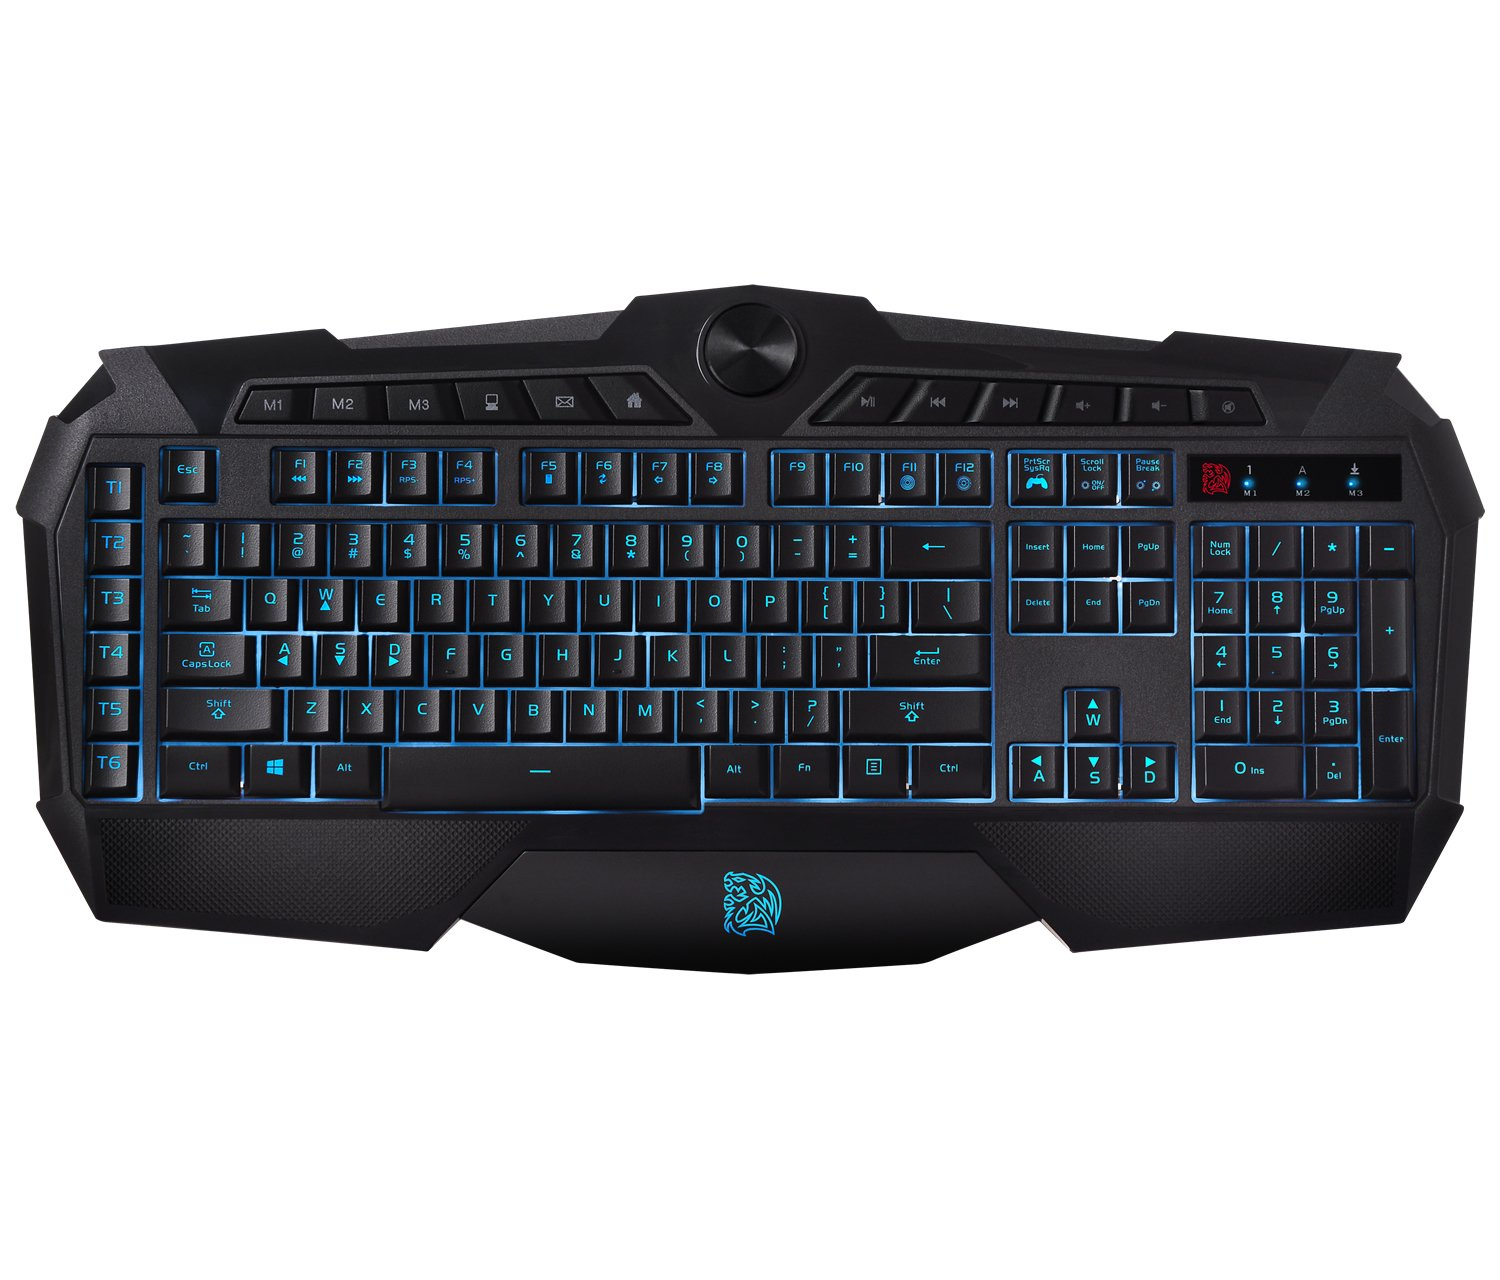 Thermaltake Gaming Keyboard (KB-CHM-MBBLUS-01) Thermaltake USA Direct